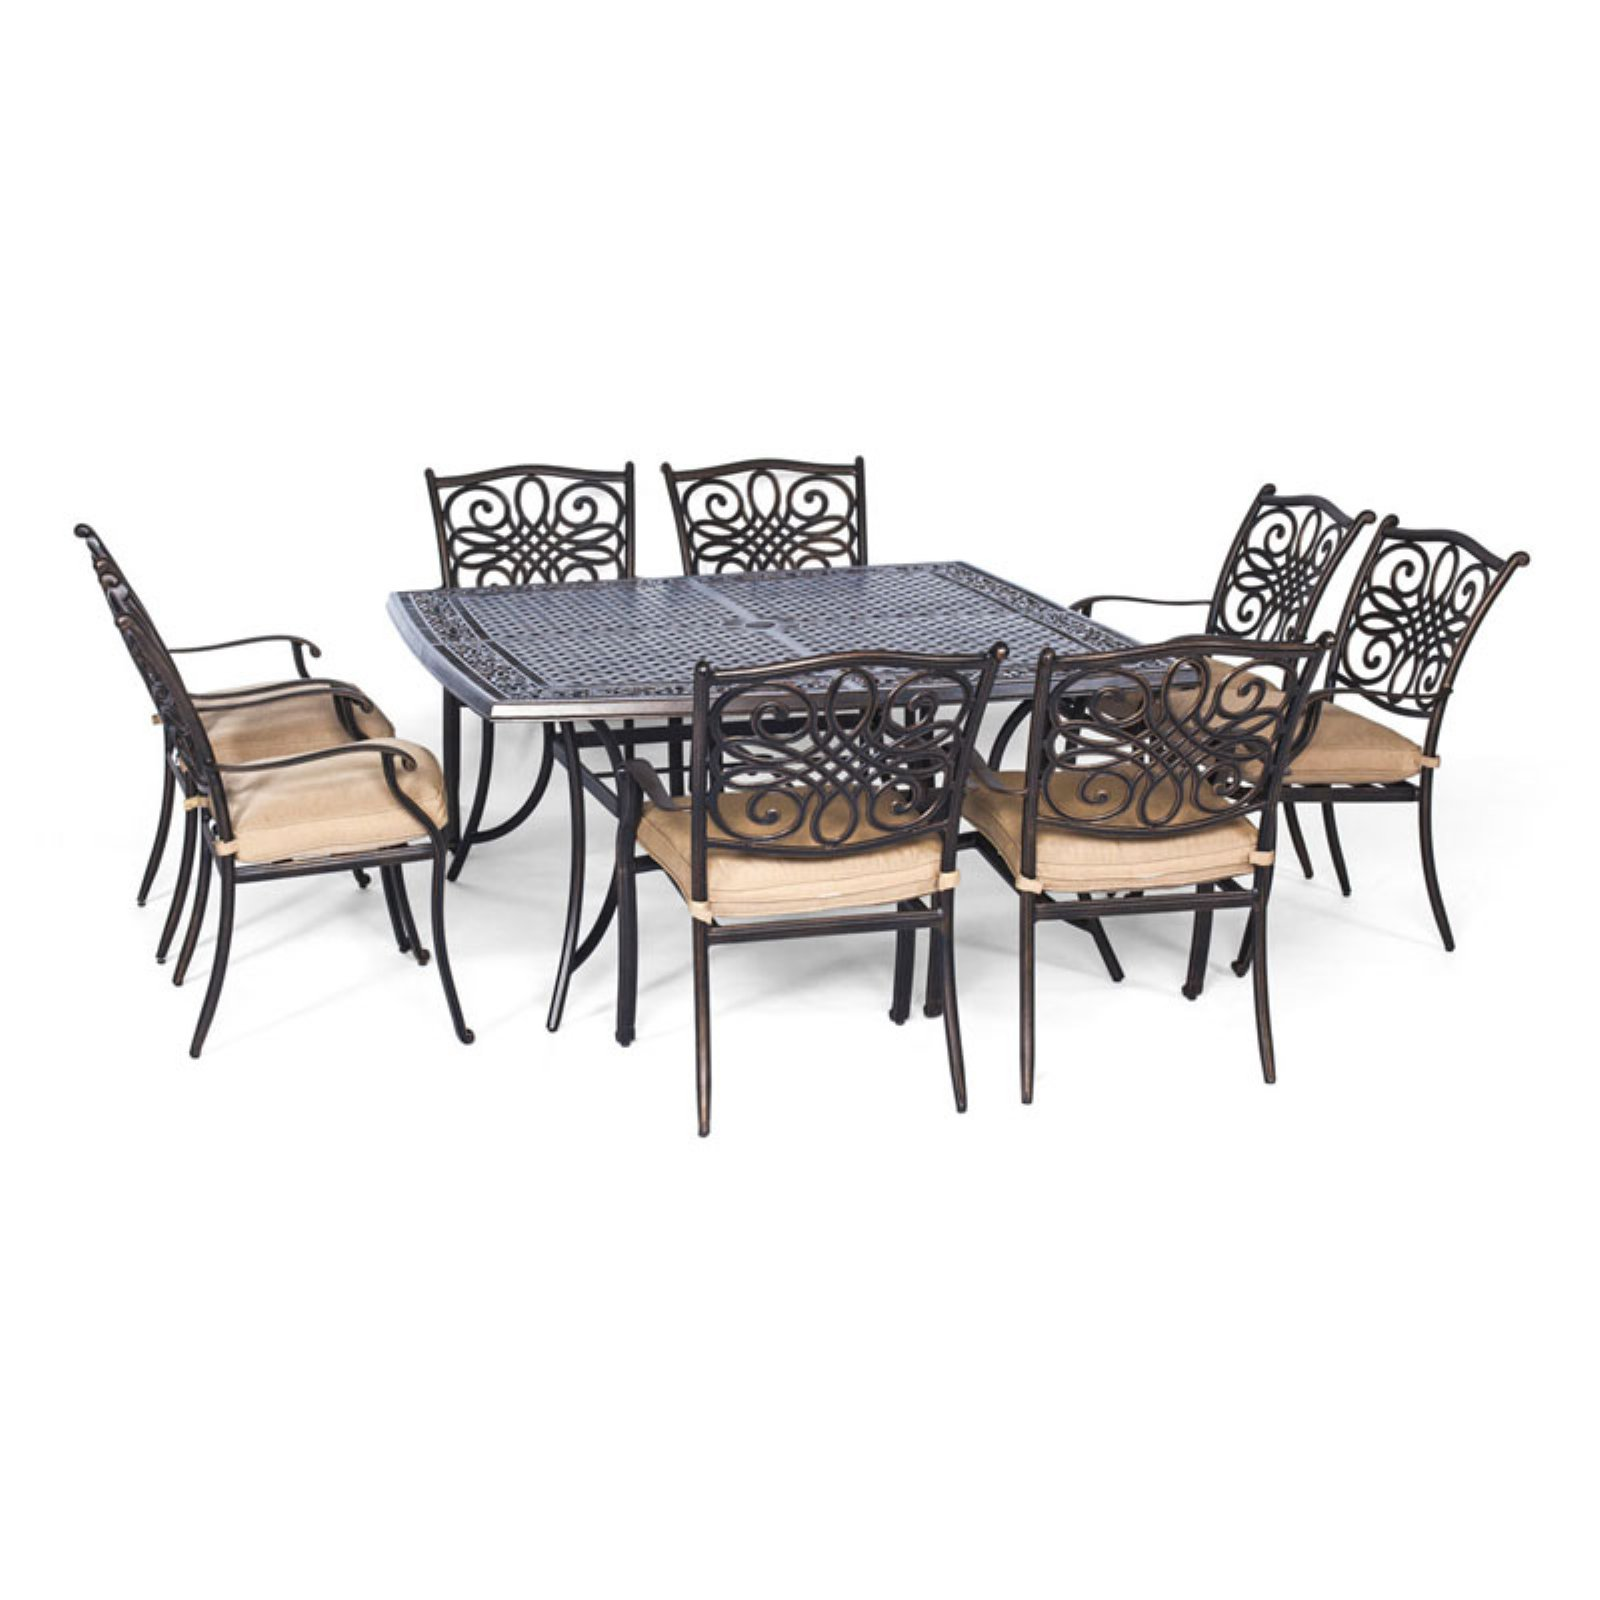 Hanover Outdoor Traditions 9-Piece Dining Set with Large Square Table, Natural Oat/Bronze